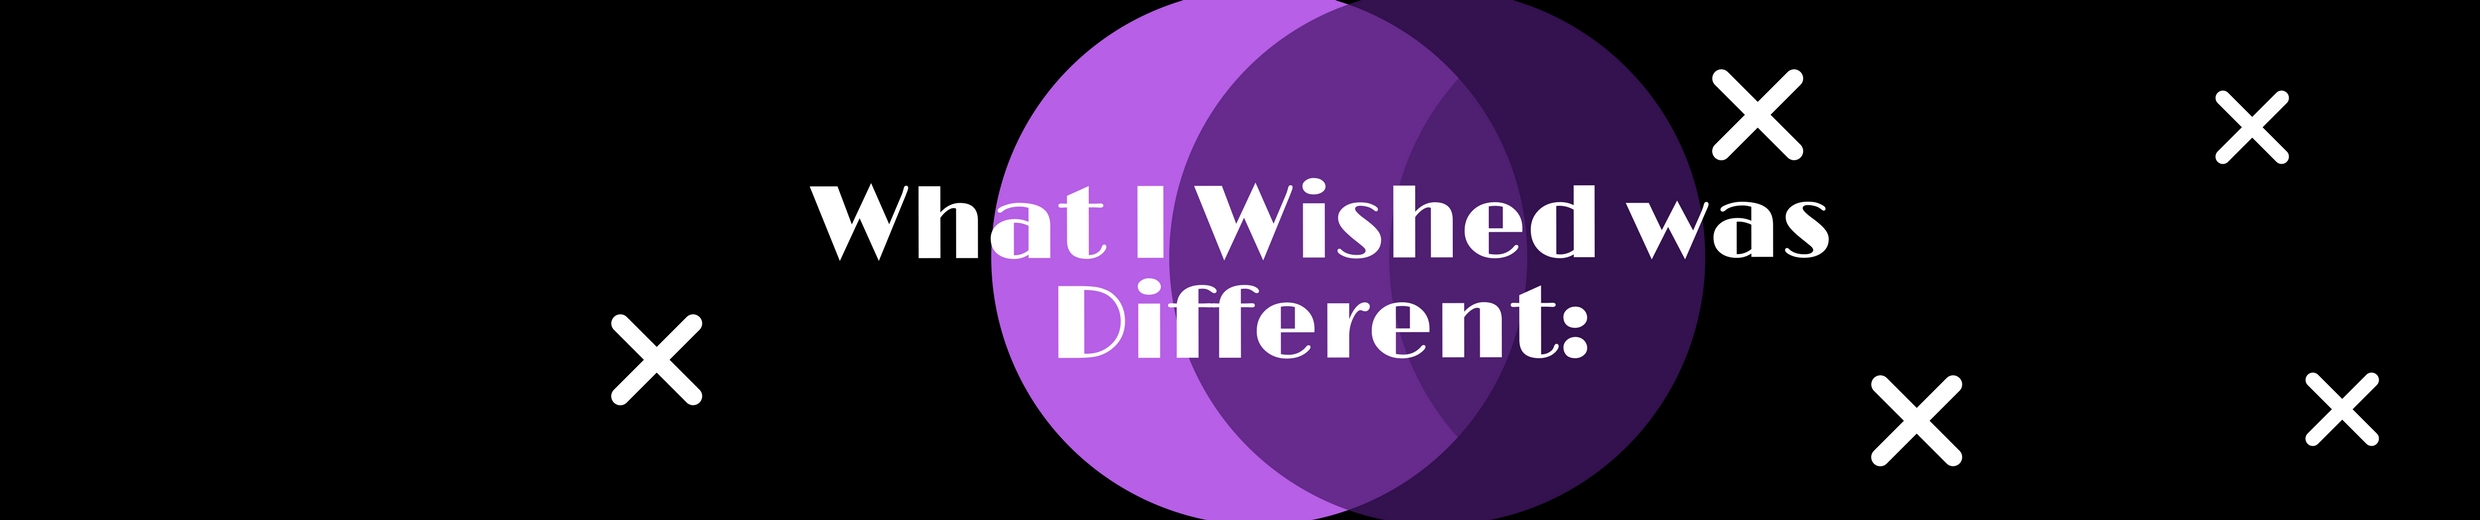 What I Wished was Different_